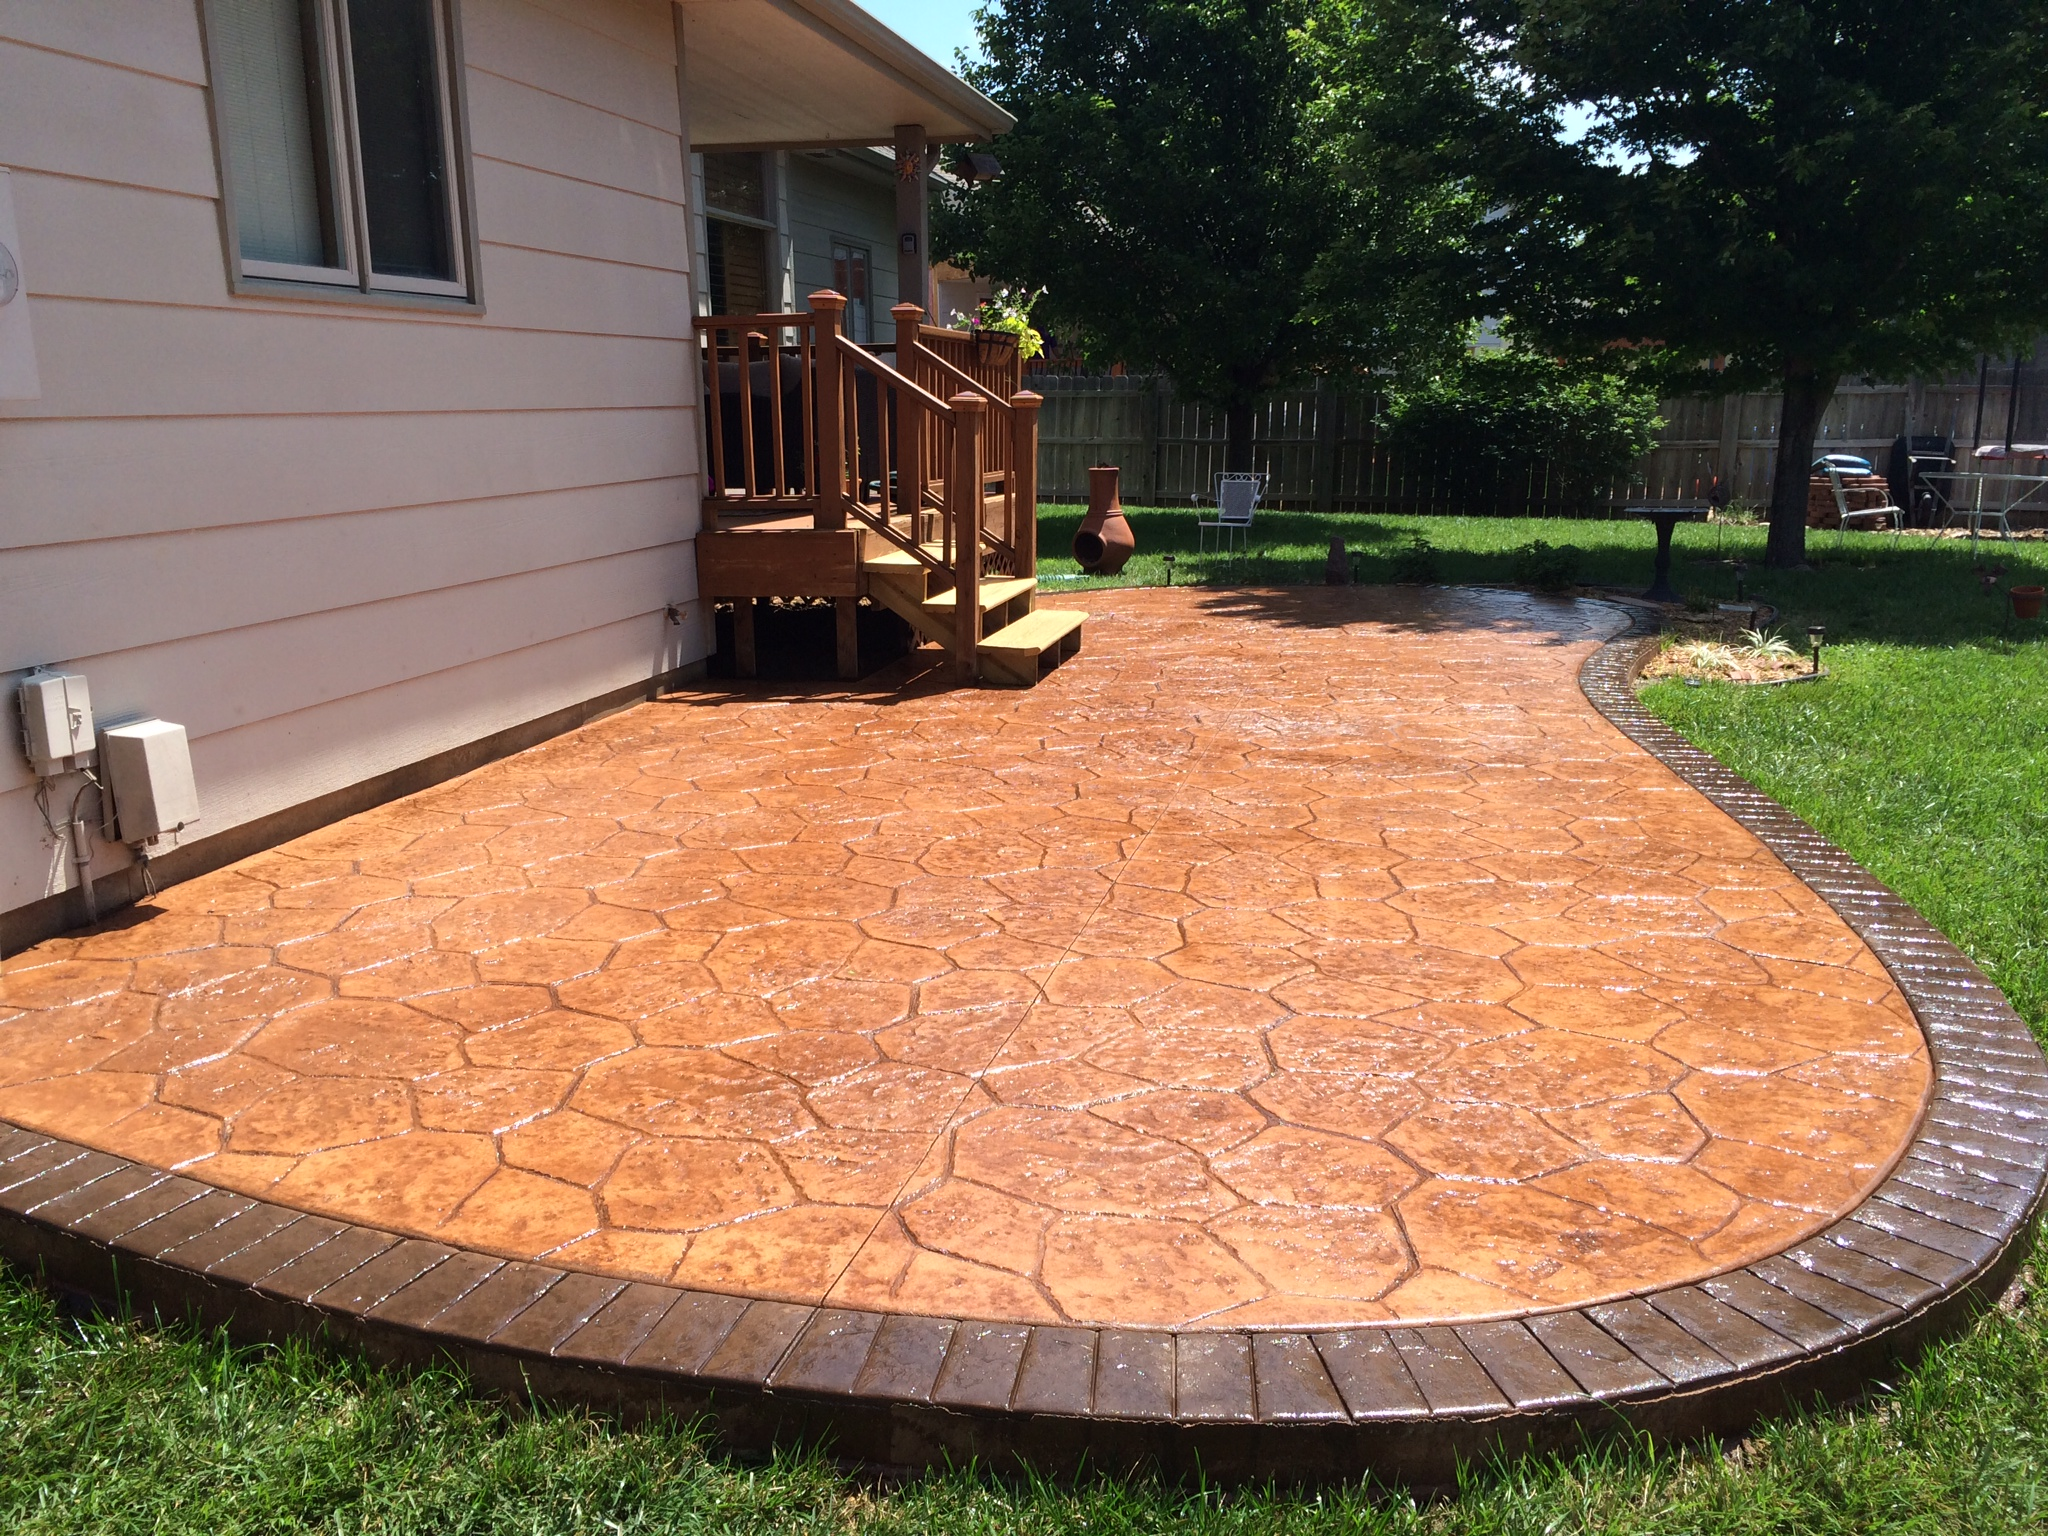 Patio pavers can transform your backyard patio pavers for wichita - Paver designs for backyard ...